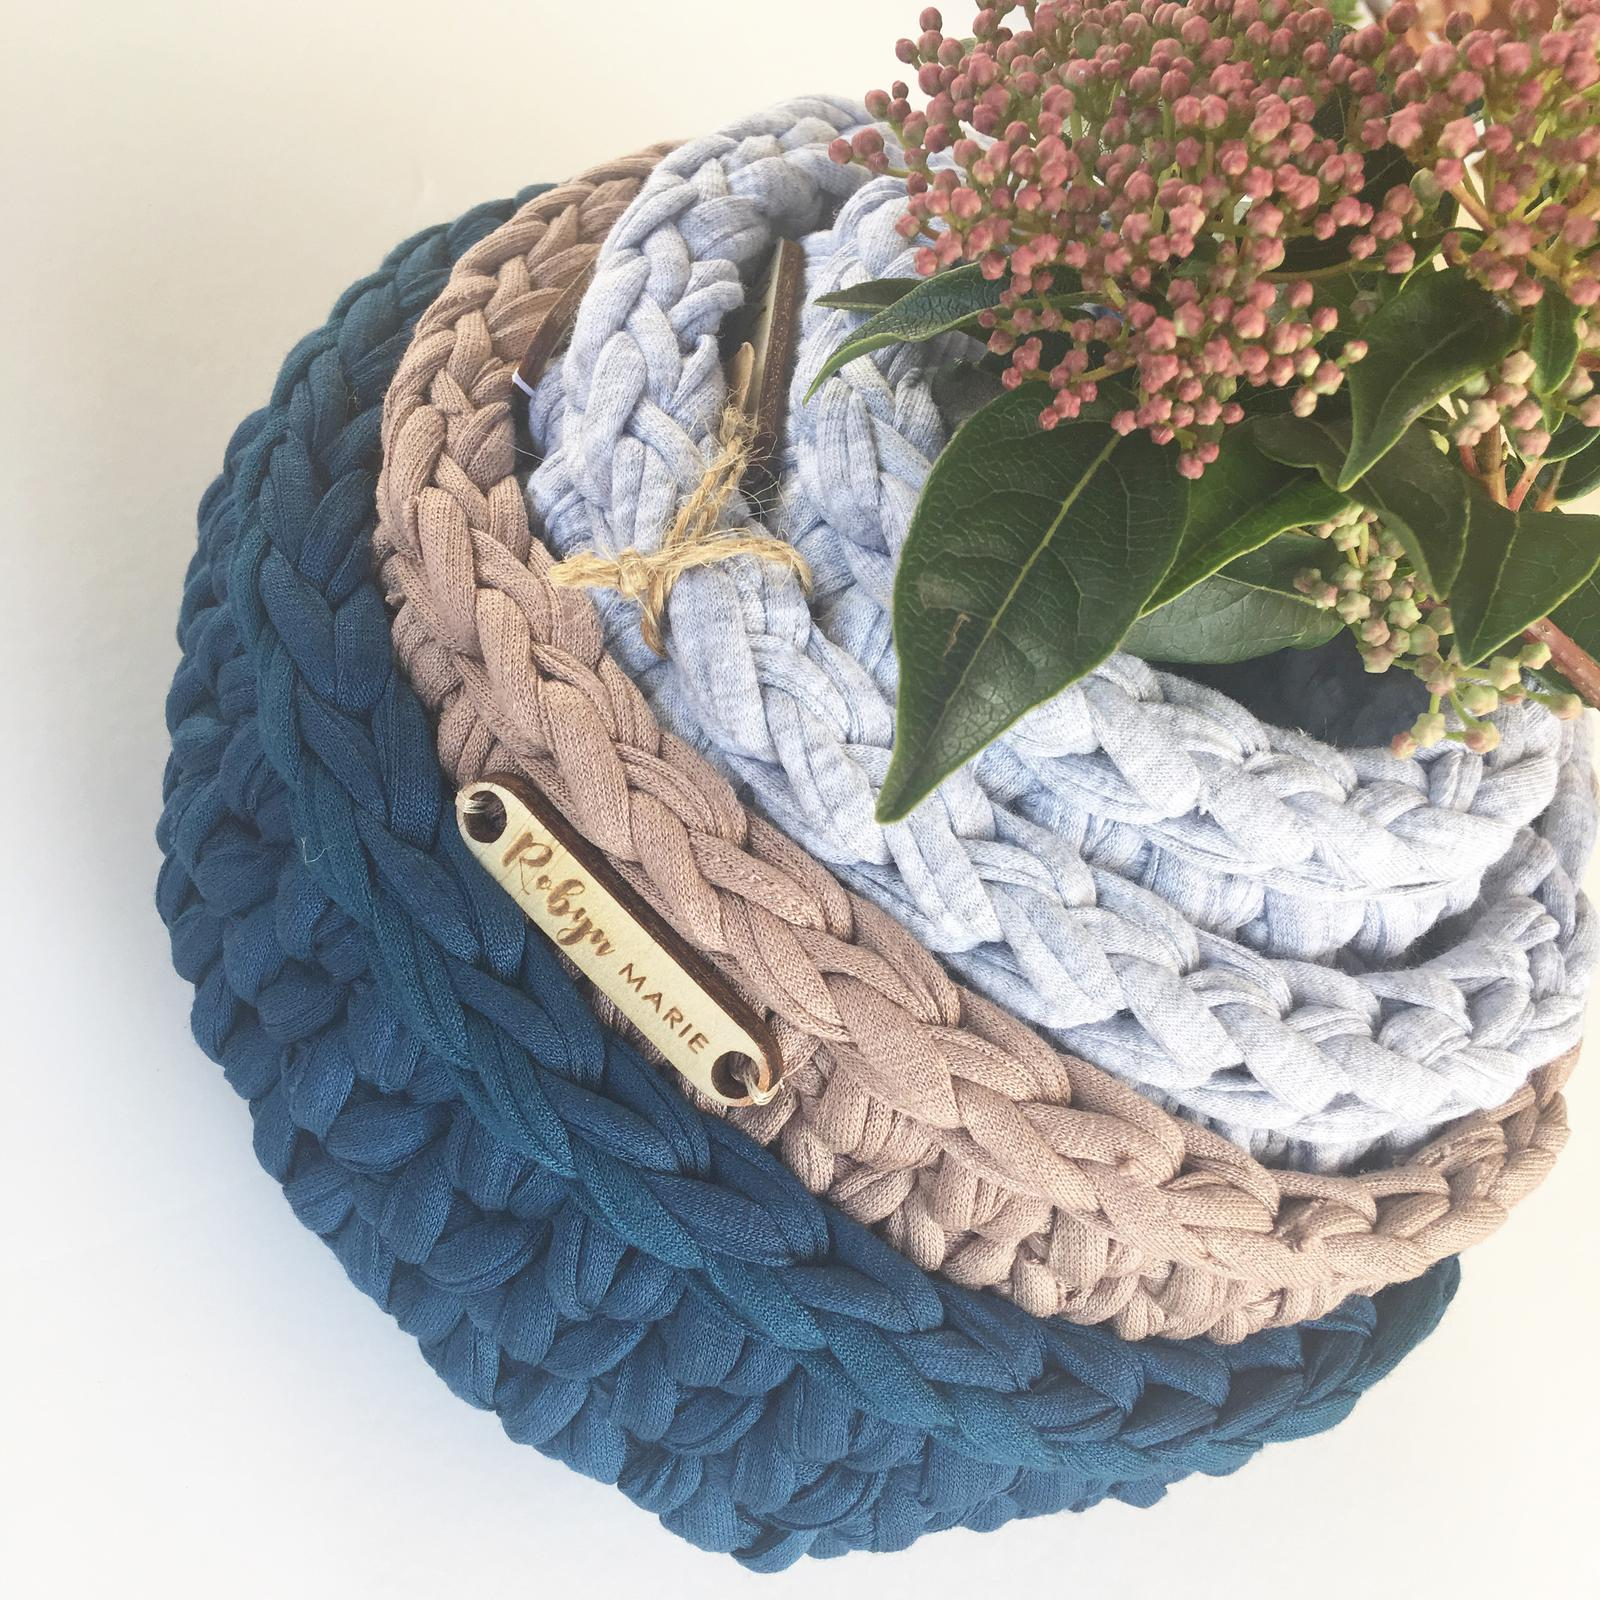 Crochet baskets stack